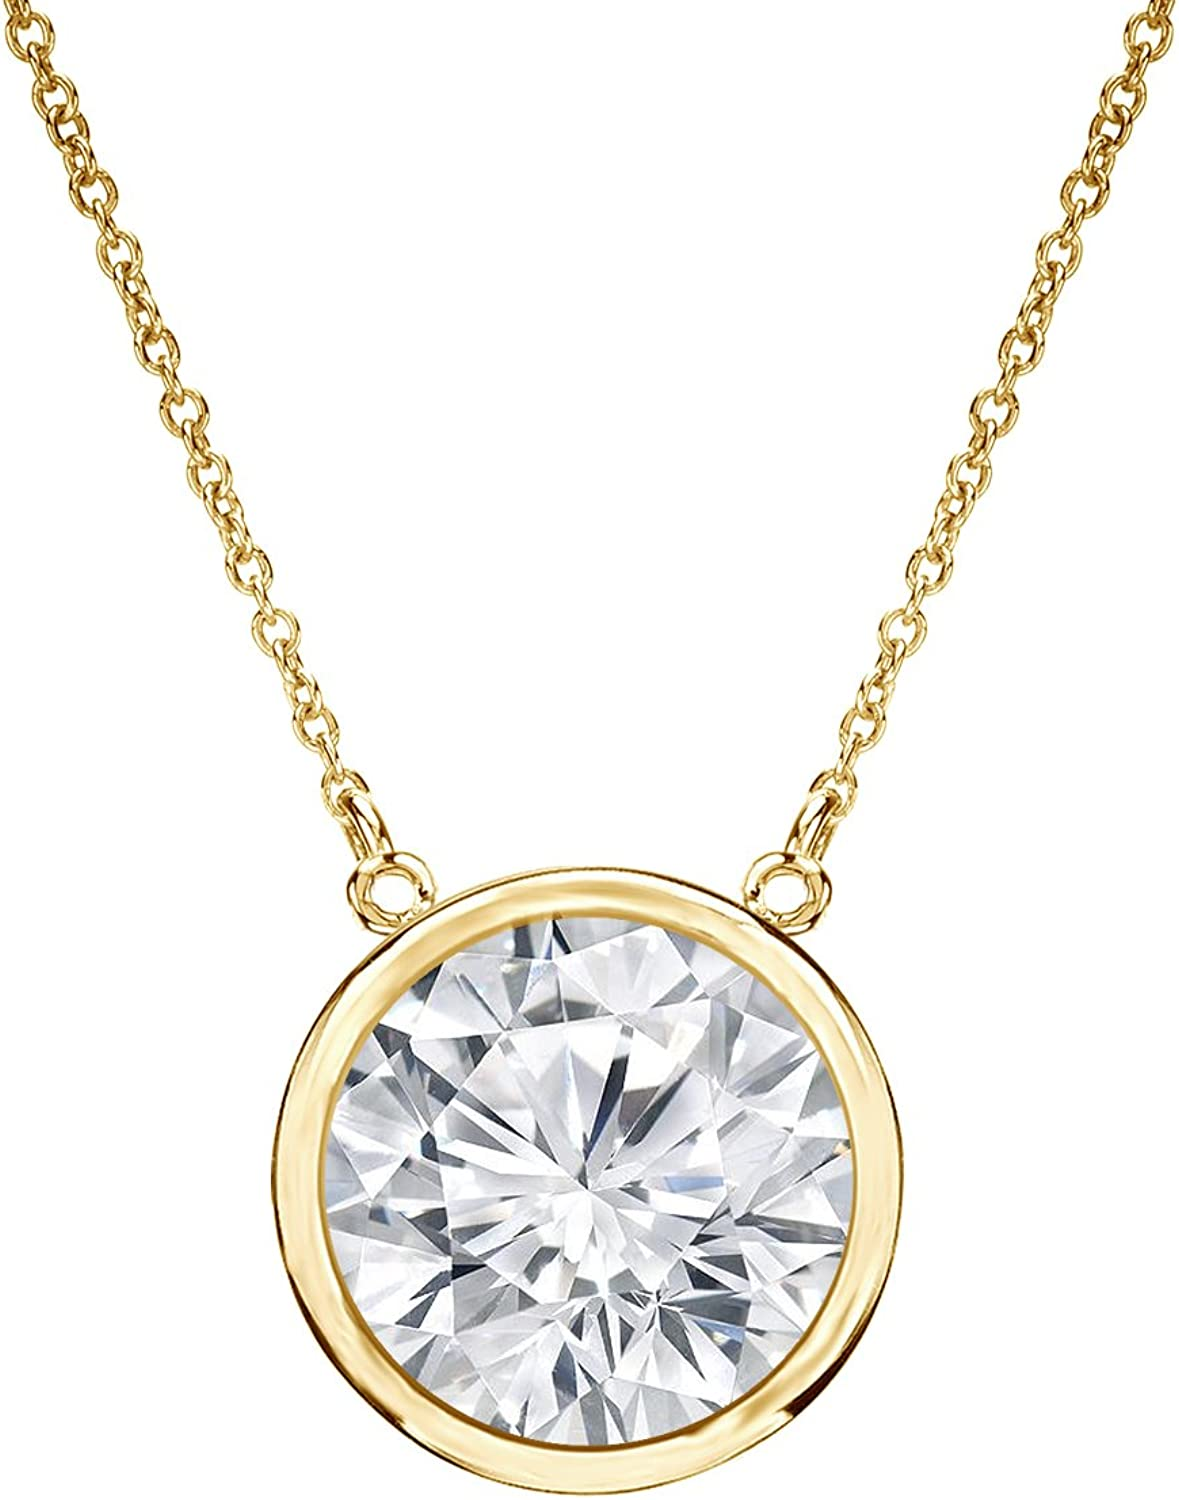 1ct Solitaire White Sapphire Pendant or Slide in 14K Yellow Gold